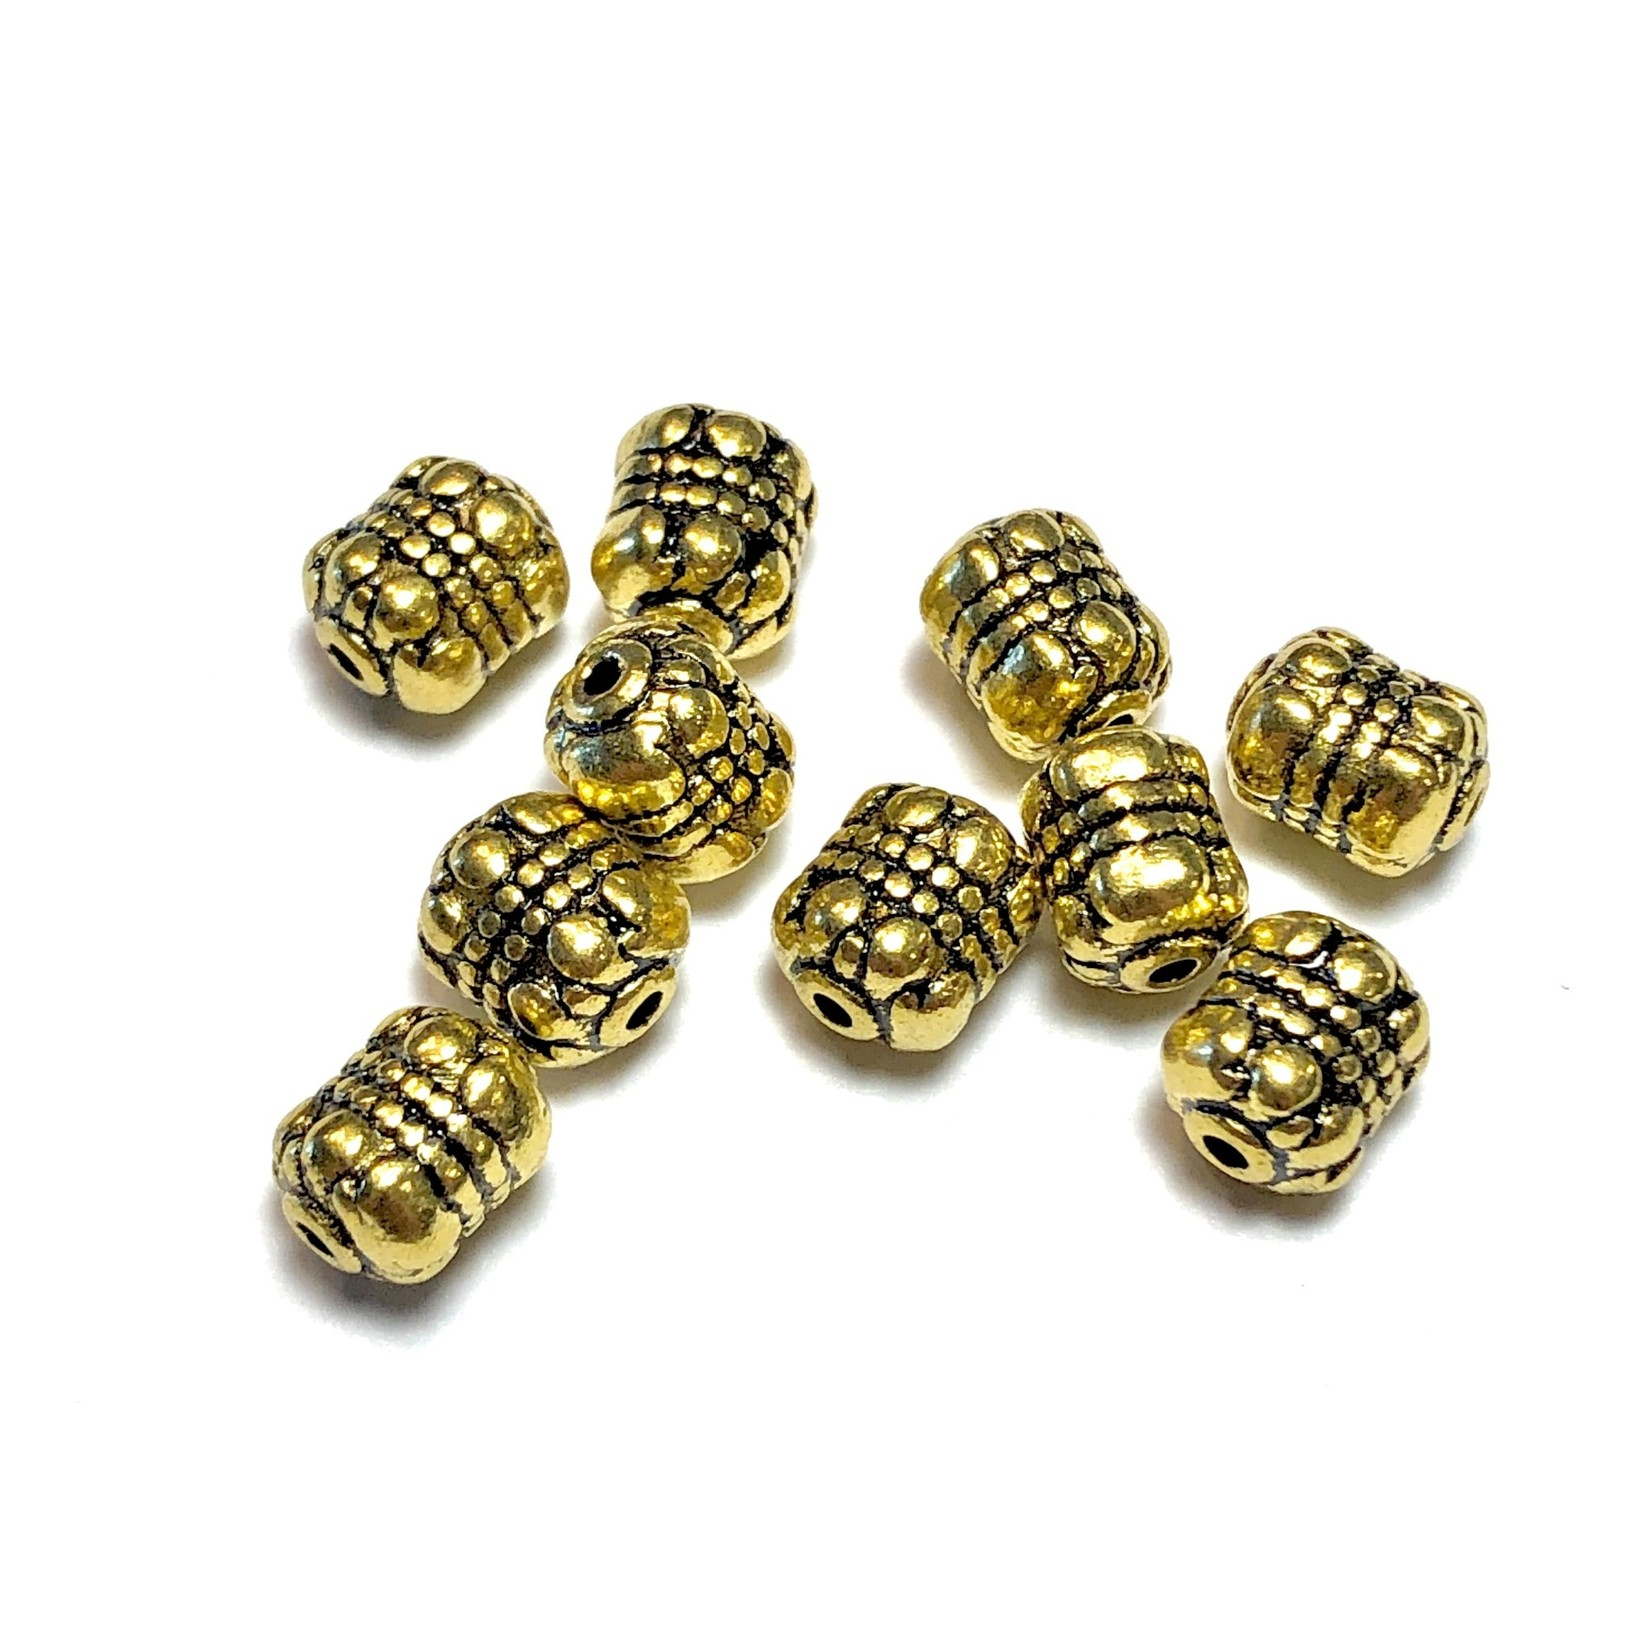 Antique Gold Plated 8x6mm Spacer Bead 24pcs